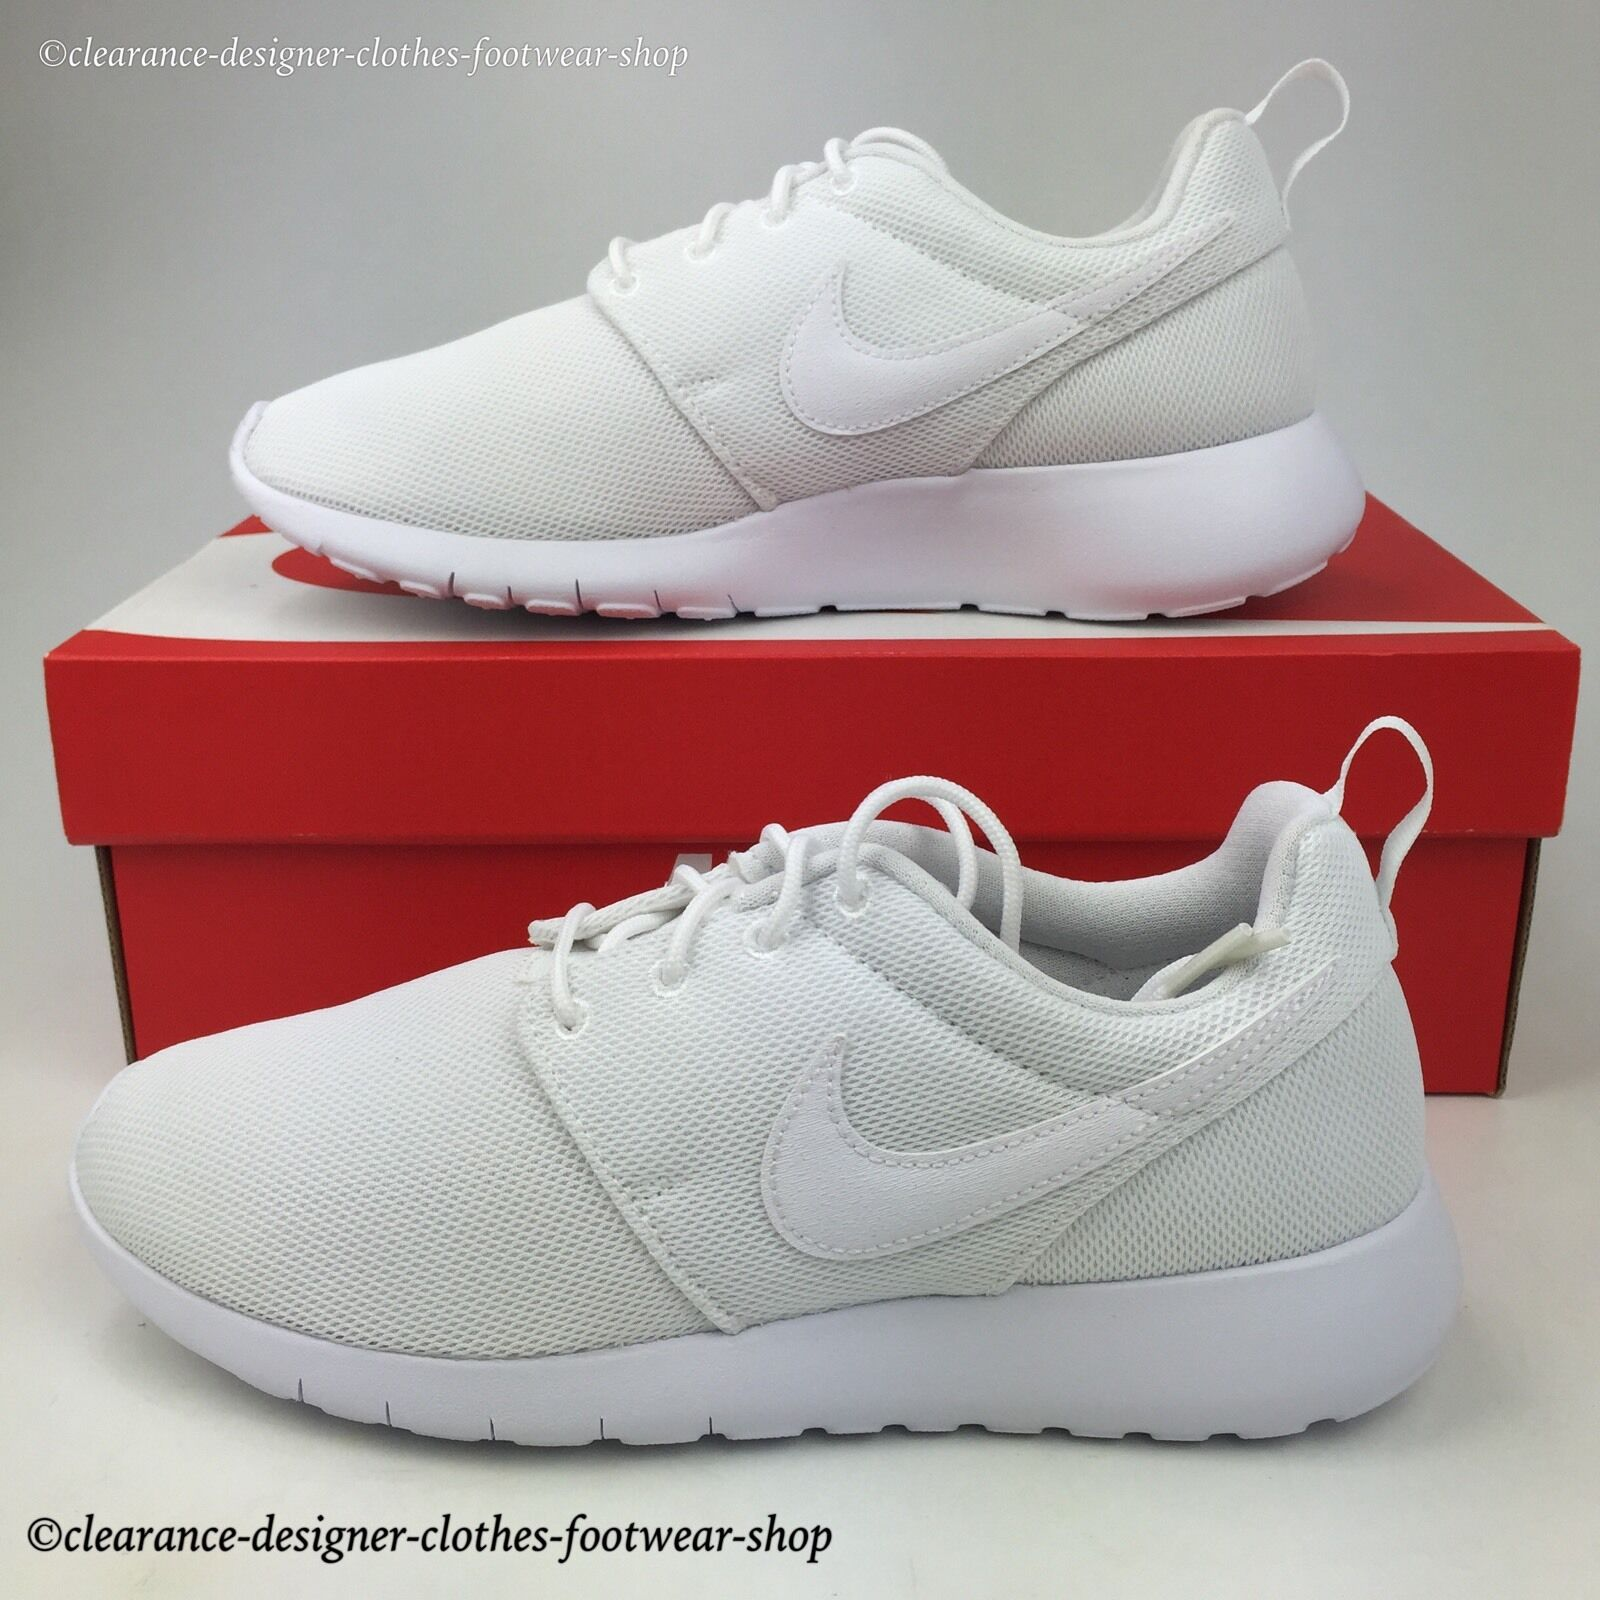 NIKE ROSHE ONE GS TRAINERS ROSHE RUN TRIPLE Weiß damen GIRLS GYM schuhe